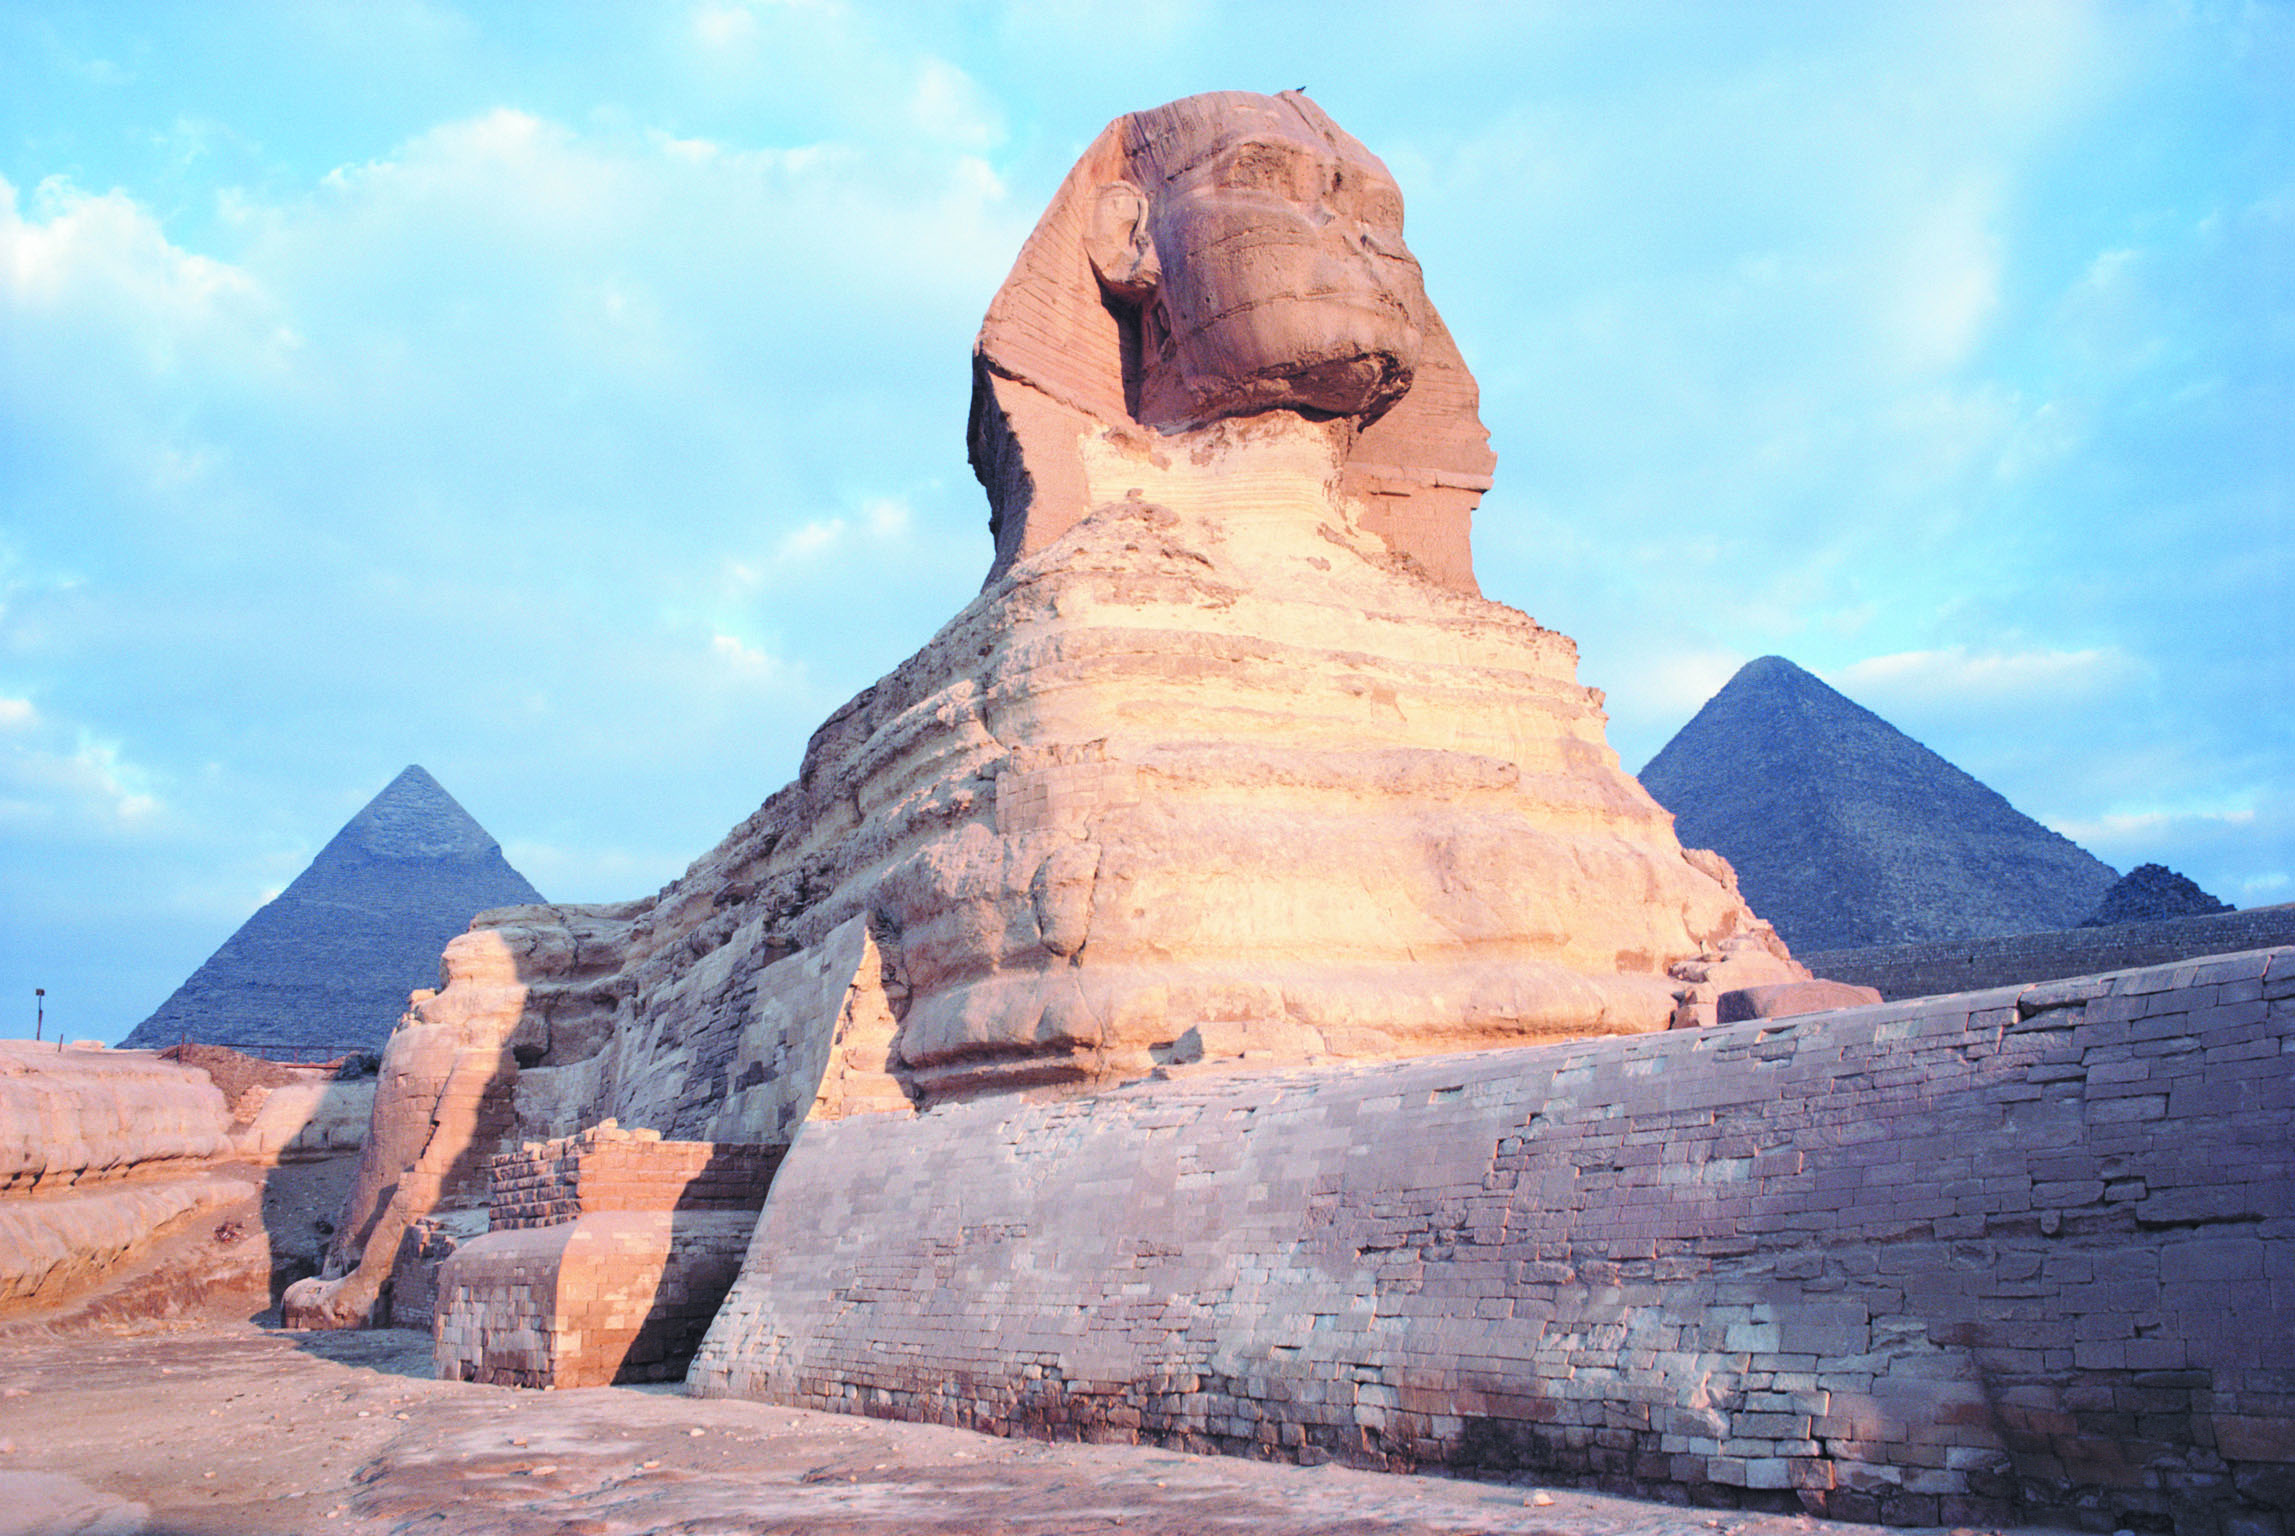 Egypt Sphinx and Pyramids.jpg